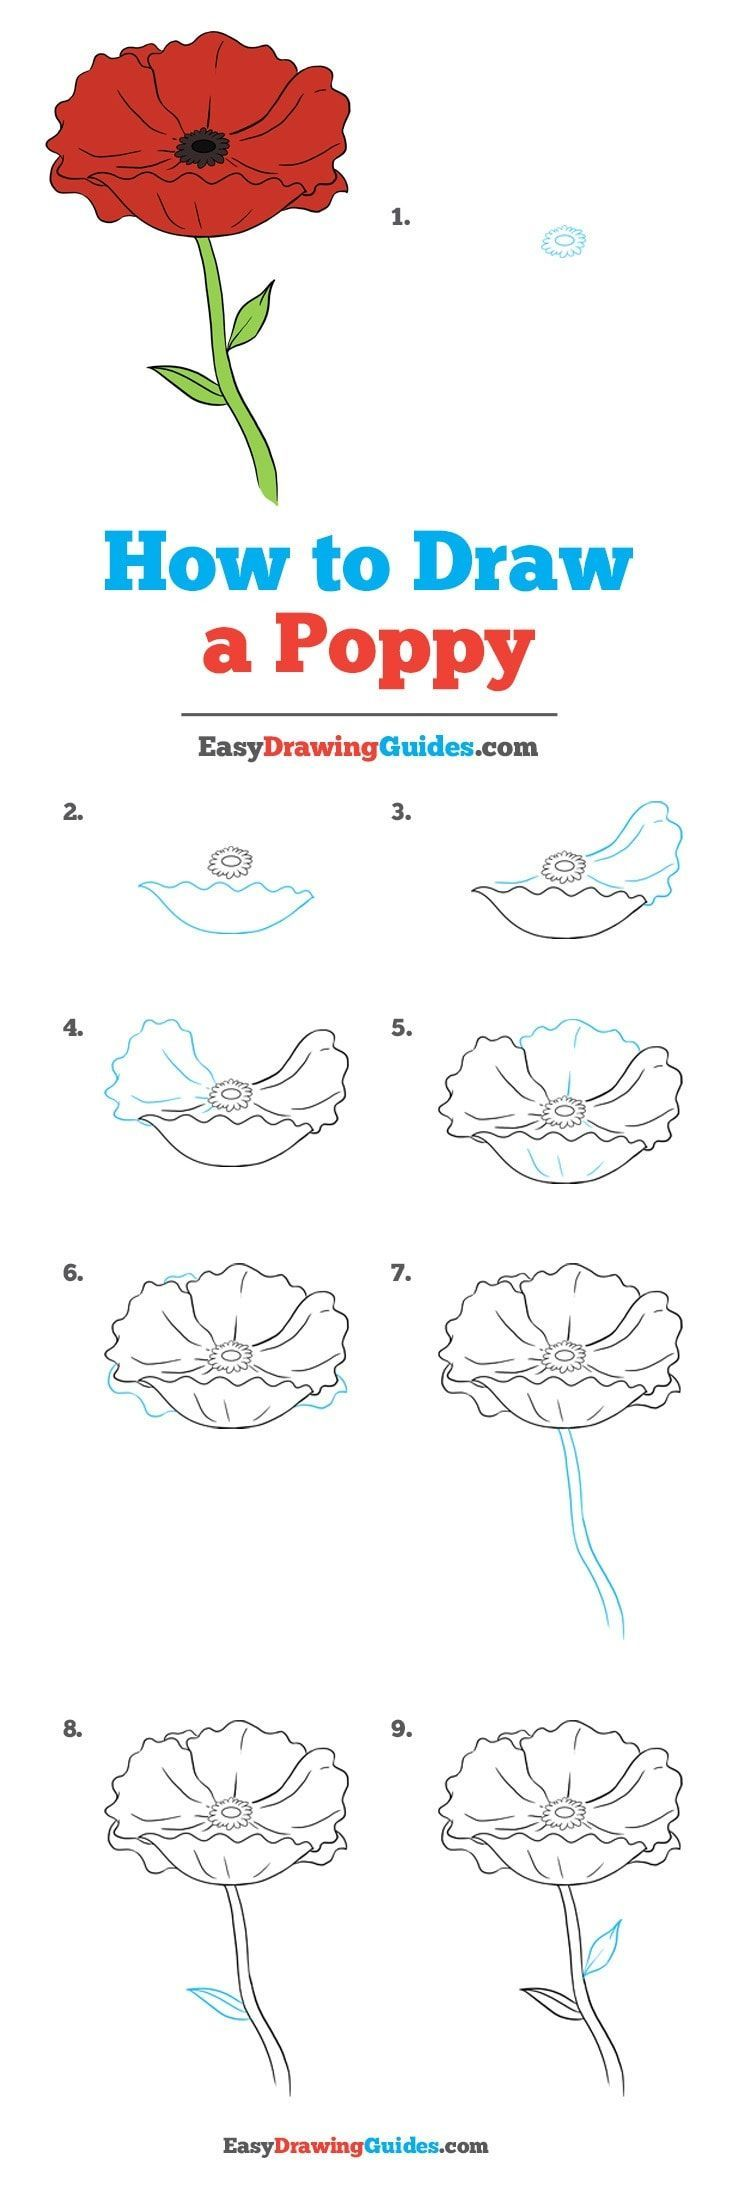 Do You Want To Learn How To Draw Flowers They Seem Pretty Complicated But By Following These Tuto Flower Drawing Tutorials Drawing Tutorial Easy Poppy Drawing